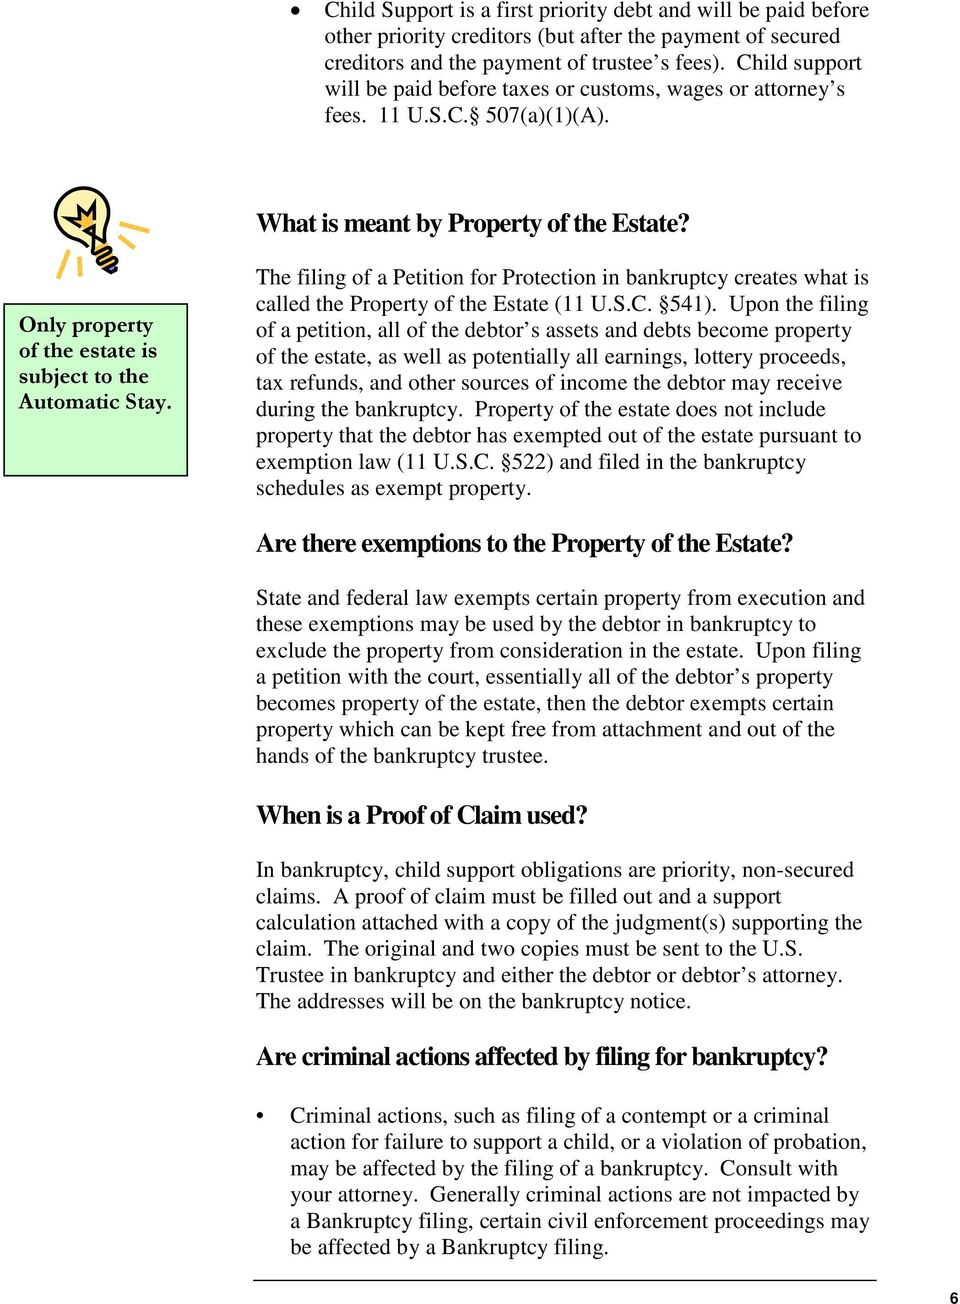 Only property of the estate is subject to the Automatic Stay. The filing of a Petition for Protection in bankruptcy creates what is called the Property of the Estate (11 U.S.C. 541).